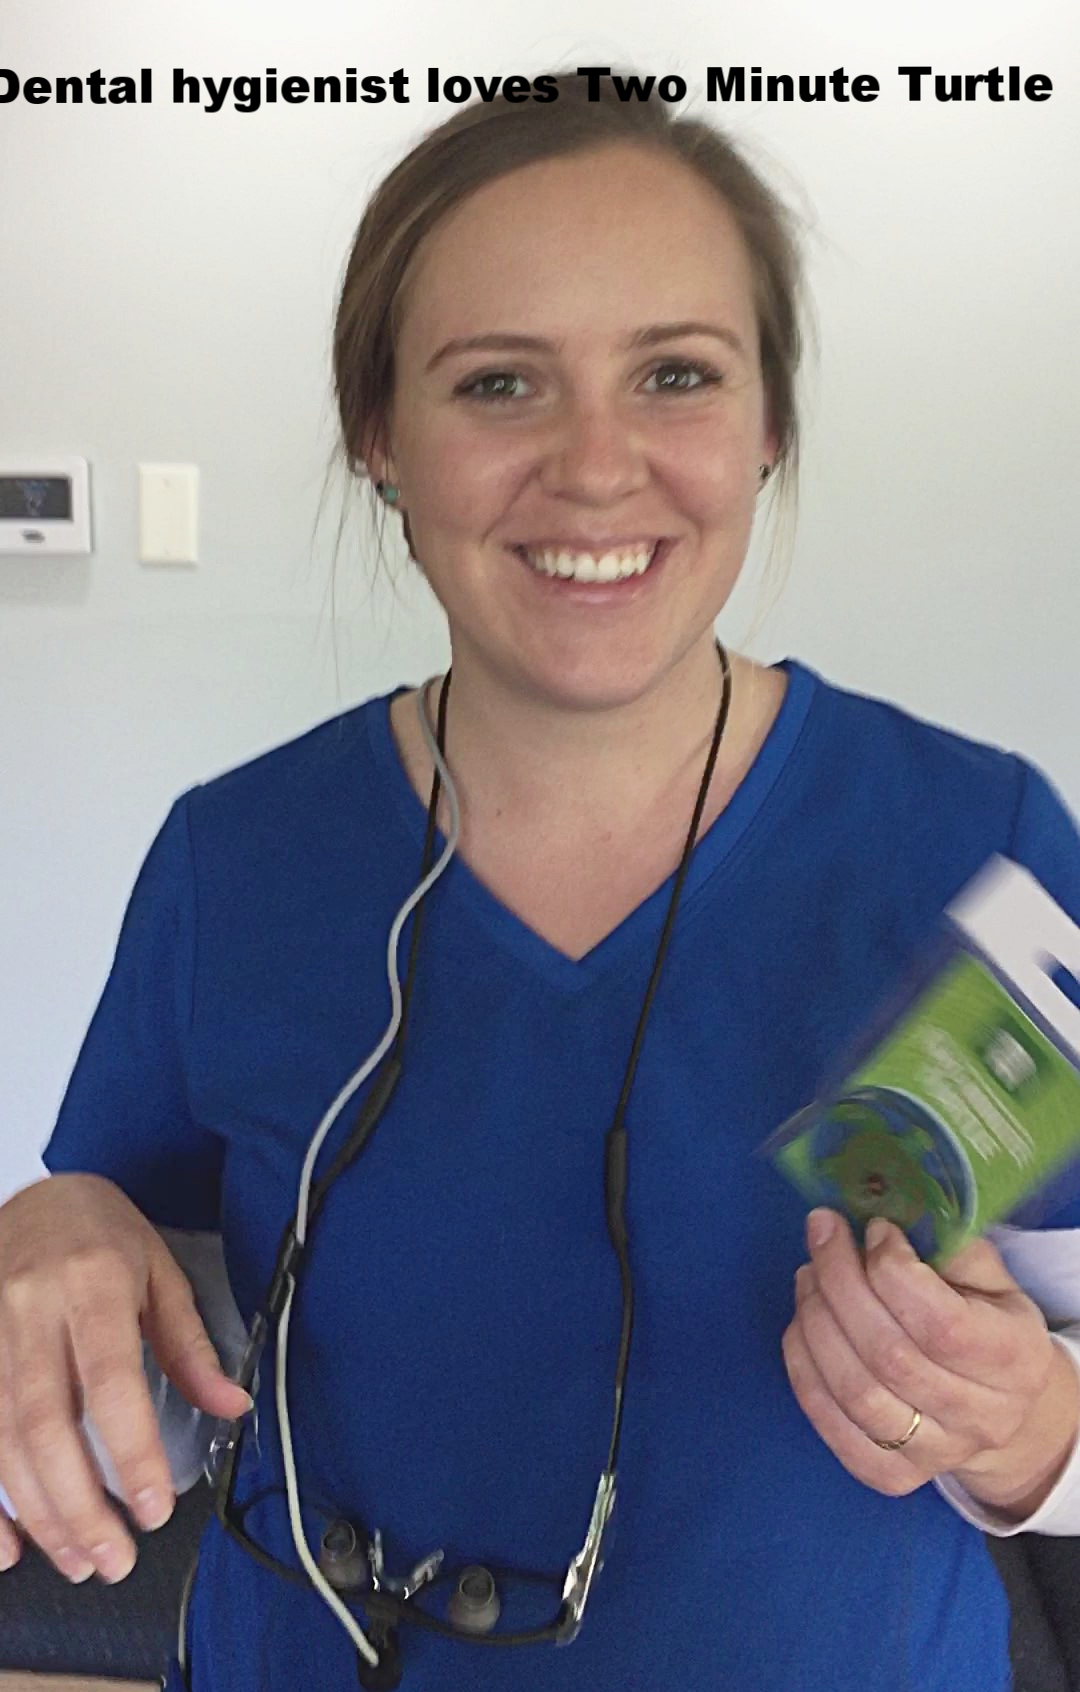 Dental hygienist loves Two Minute Turtle Timer for toothbrushing